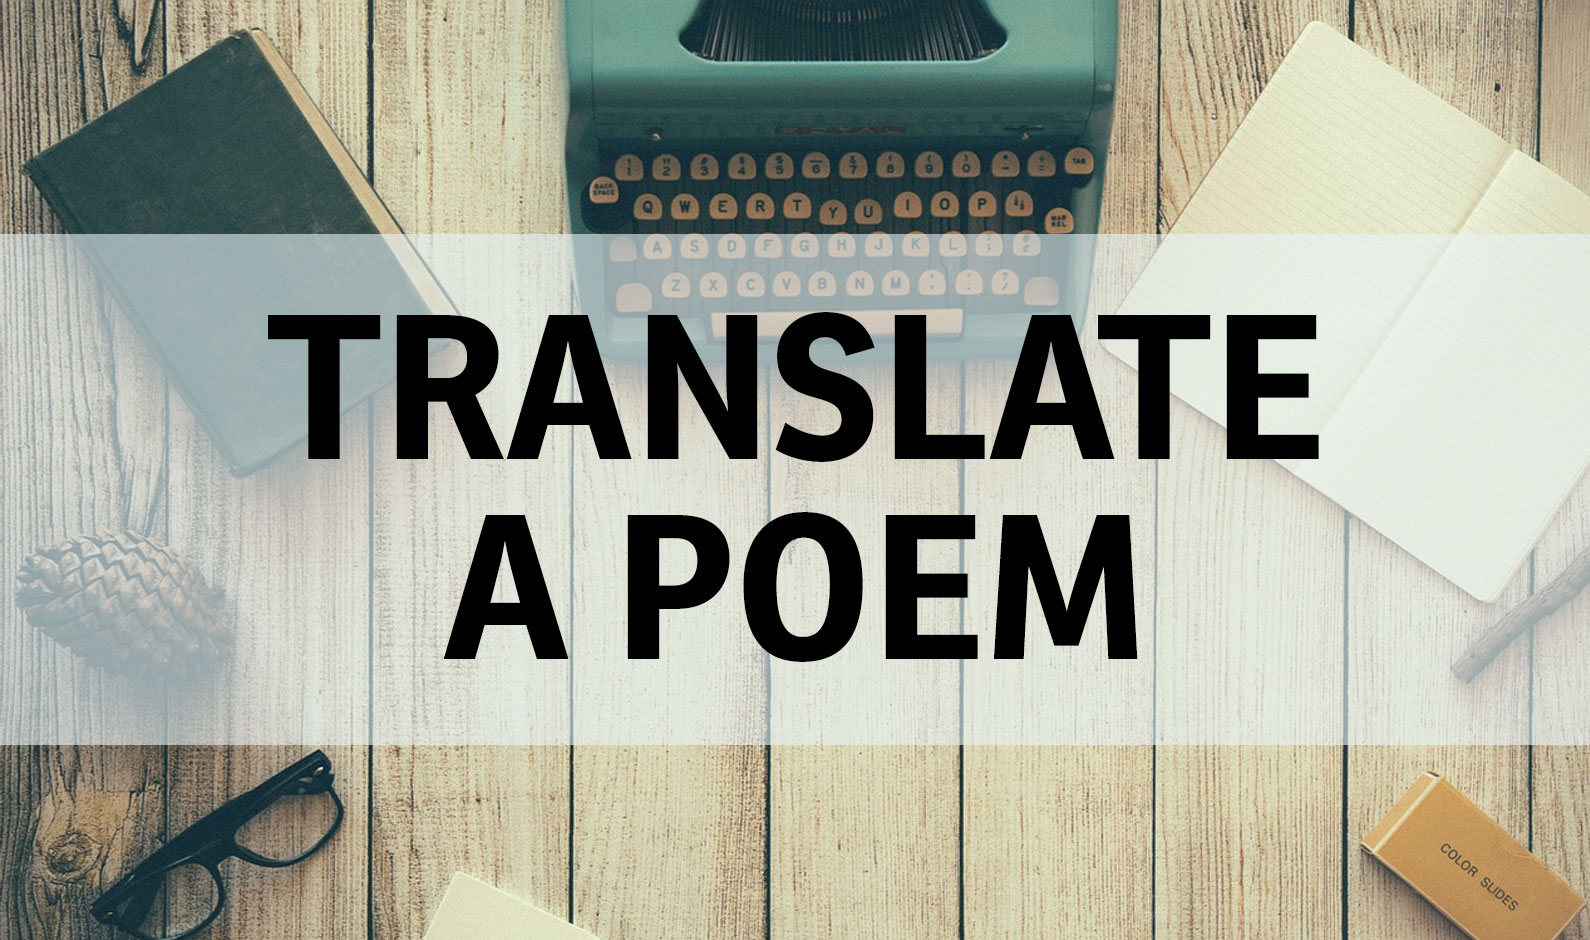 TRANSLATE-A-POEM